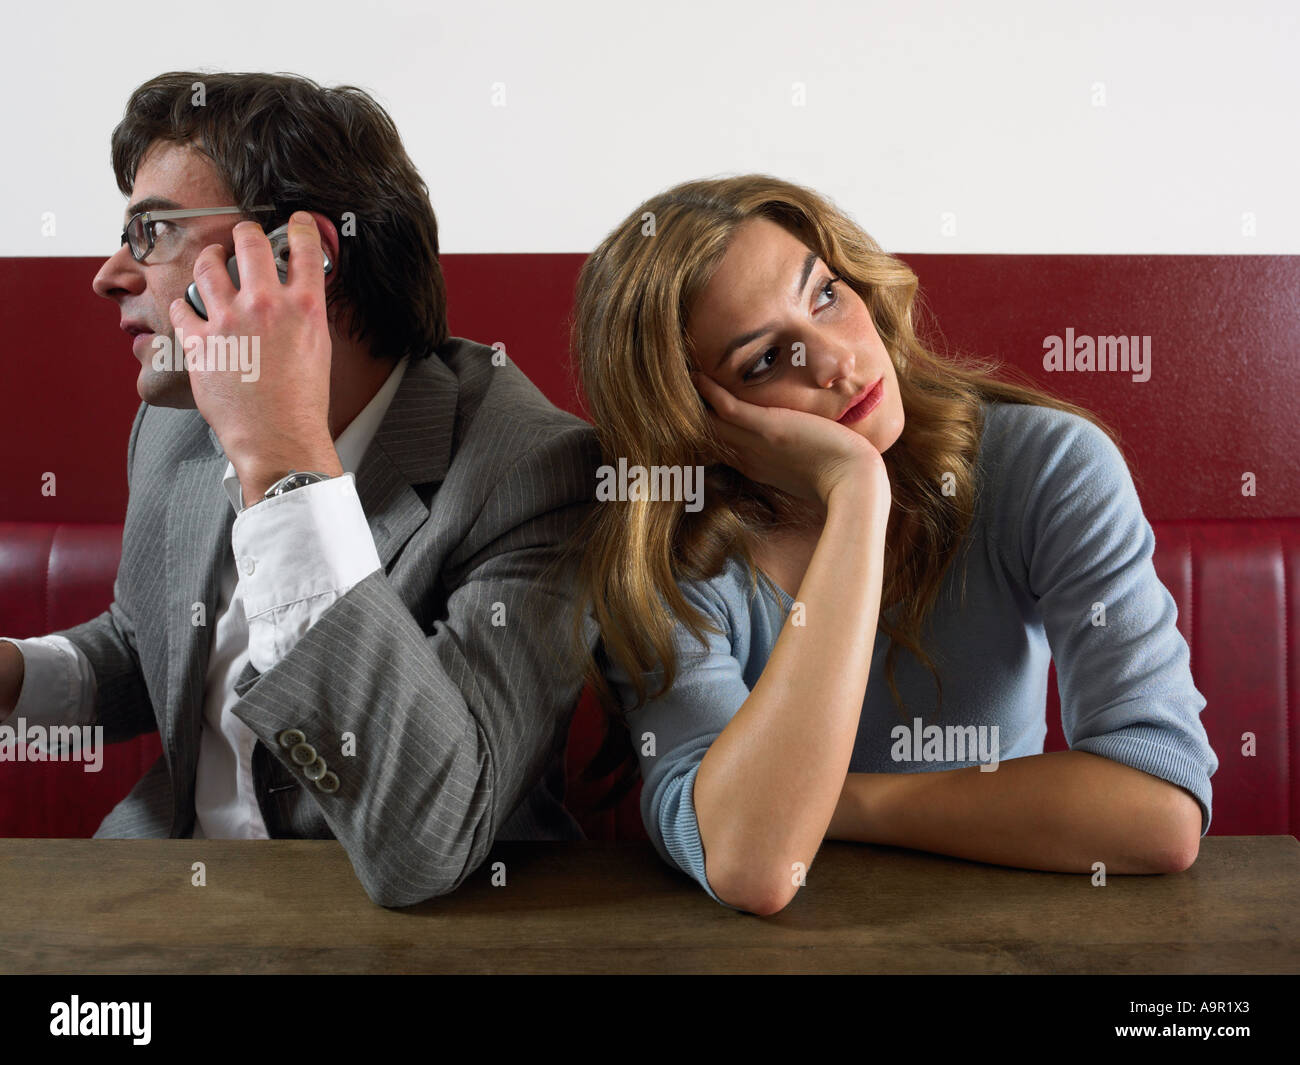 Woman bored as man talks on phone - Stock Image